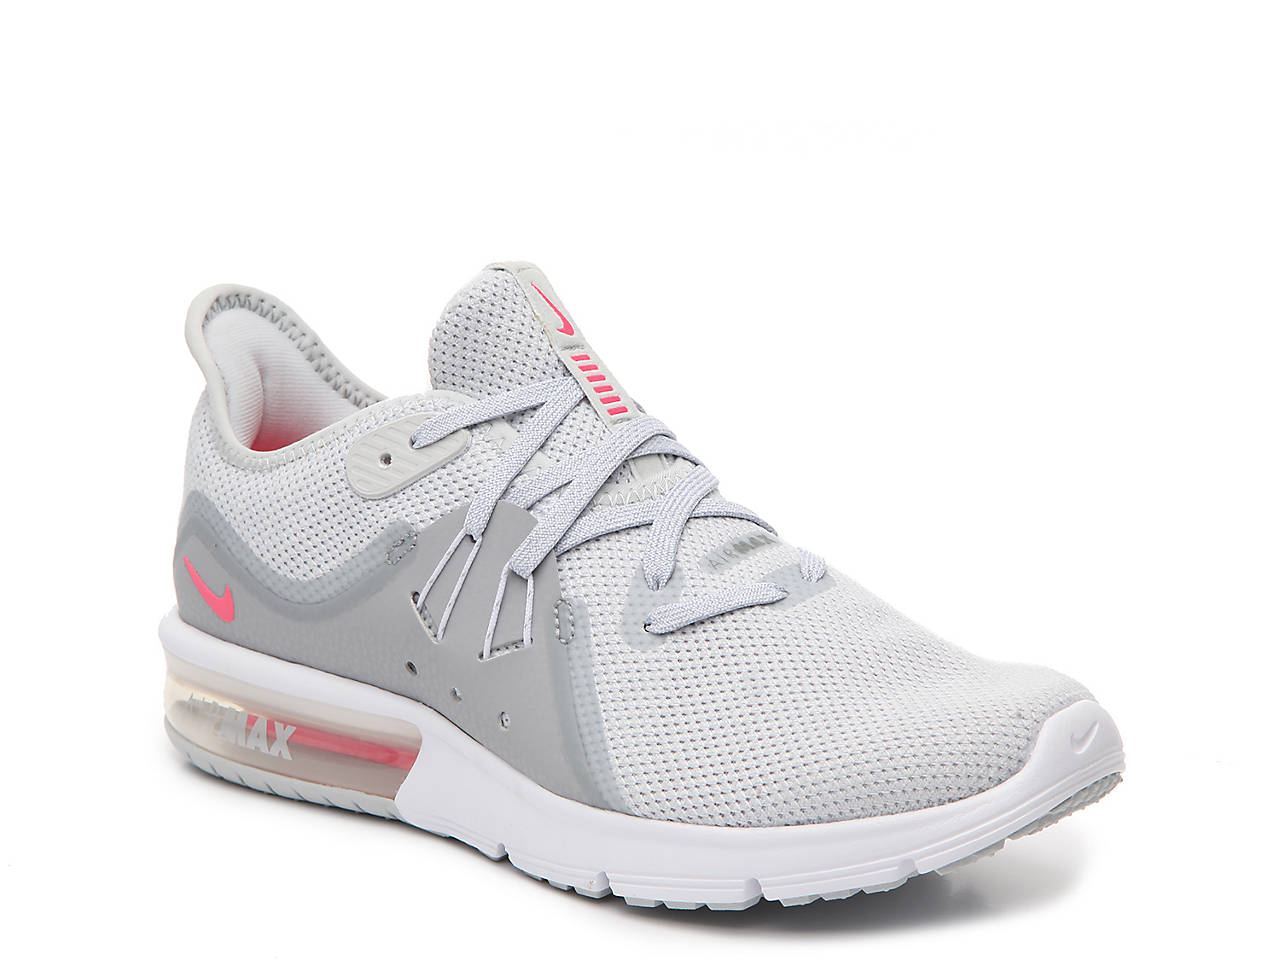 Nike Air Max Sequent 3 Lightweight Running Shoe - Women s Women s ... 3bf20fadd